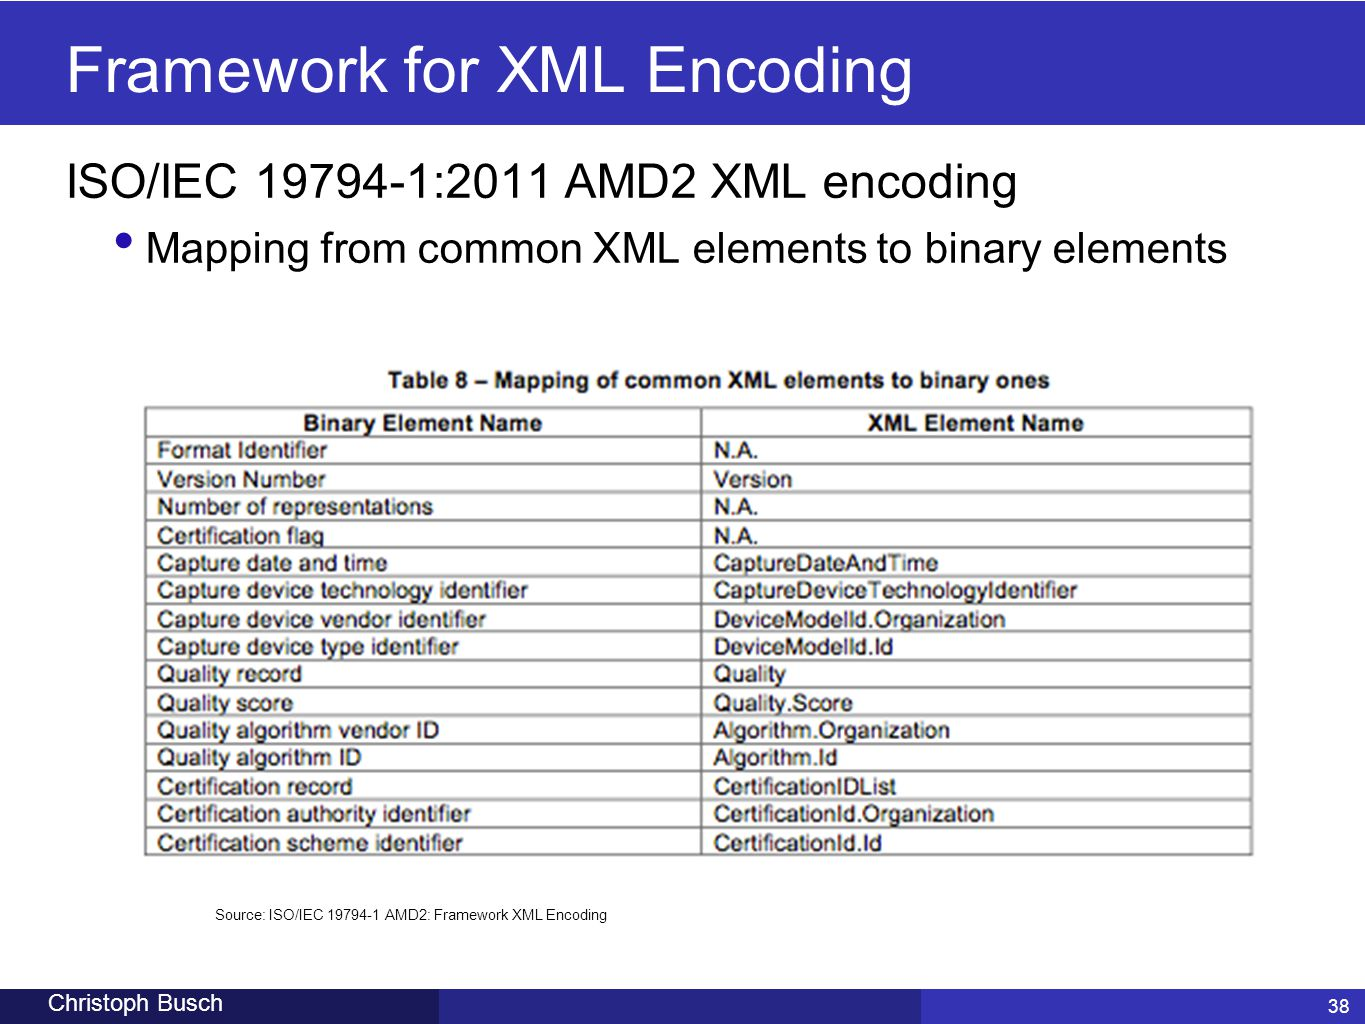 38 Christoph Busch Framework for XML Encoding ISO/IEC 19794-1:2011 AMD2 XML encoding Mapping from common XML elements to binary elements 38 Source: IS